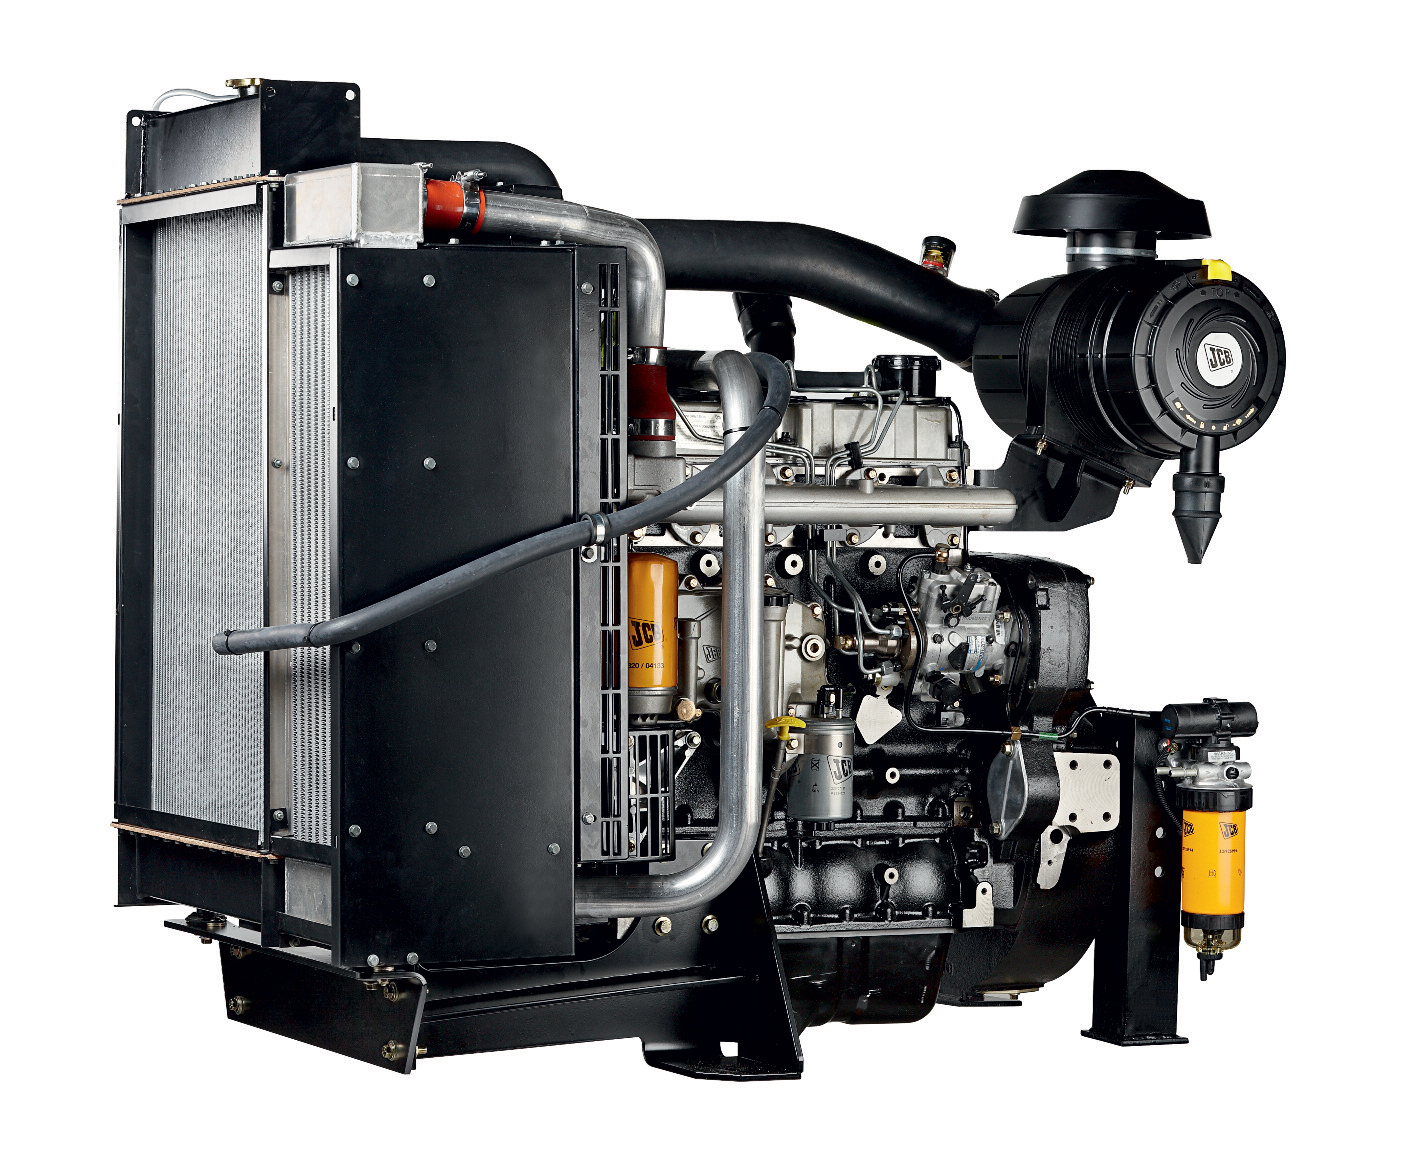 448 TURBOCHARGED AFTERCOOLED 127KVA PRIME @50HZ